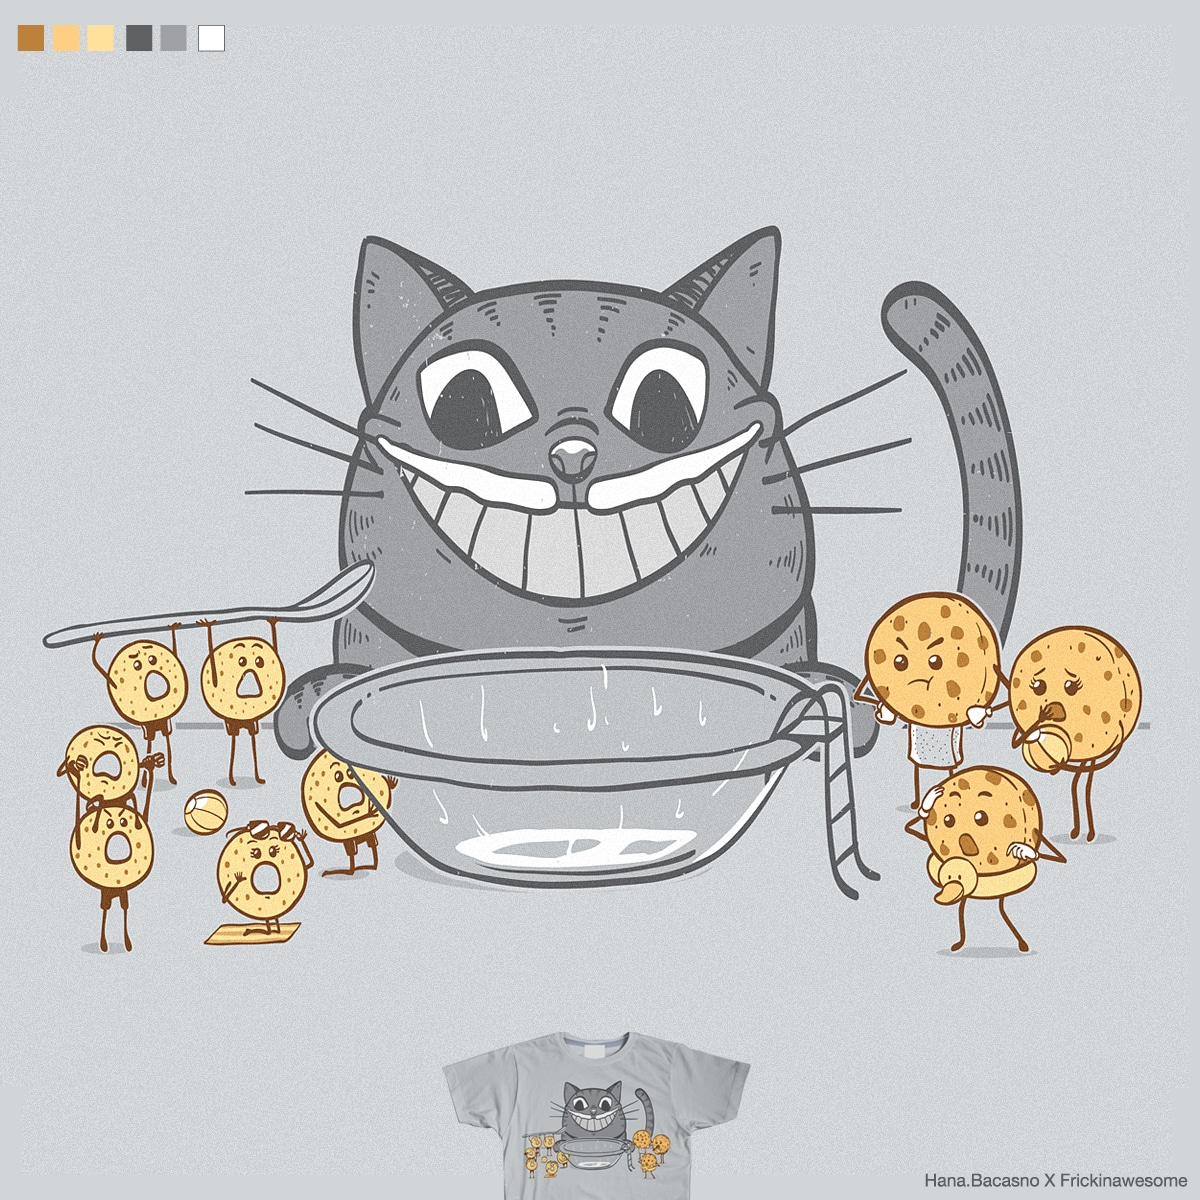 Kitty Ruins Everything by FRICKINAWESOME and rhobdesigns on Threadless